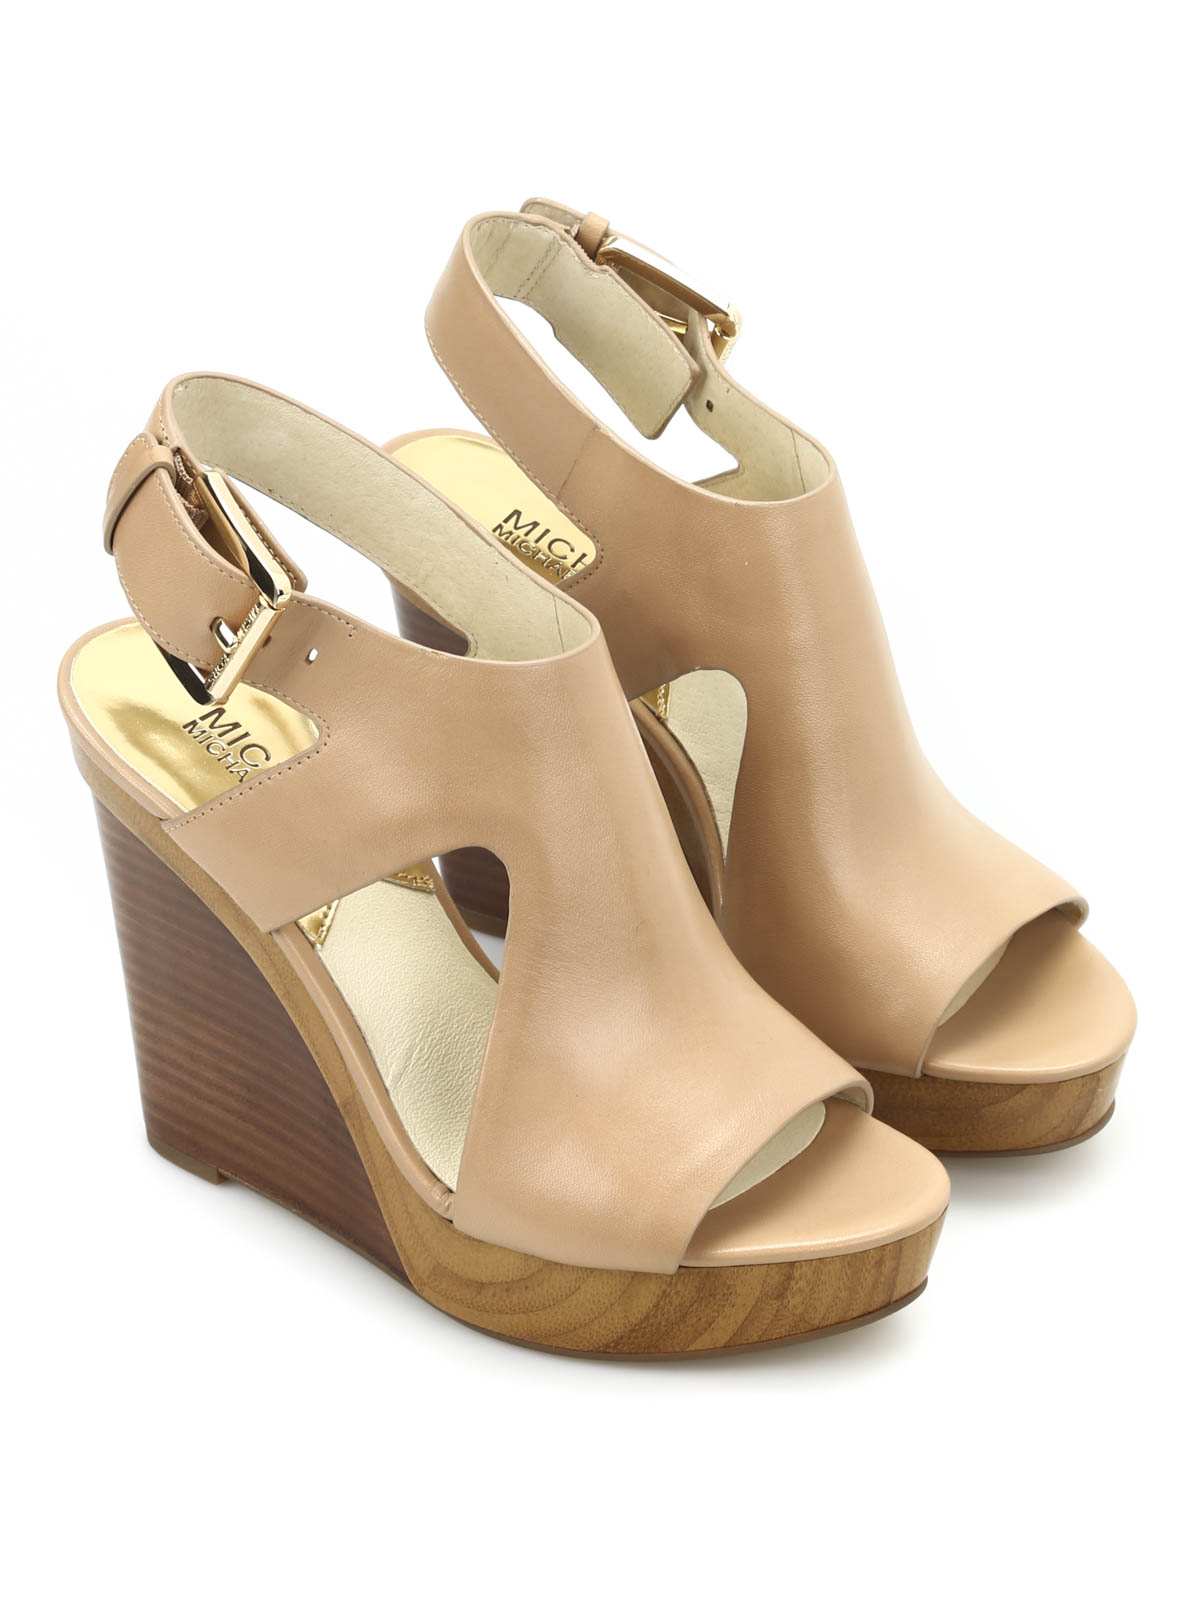 josephine leather wedges by michael kors sandals ikrix